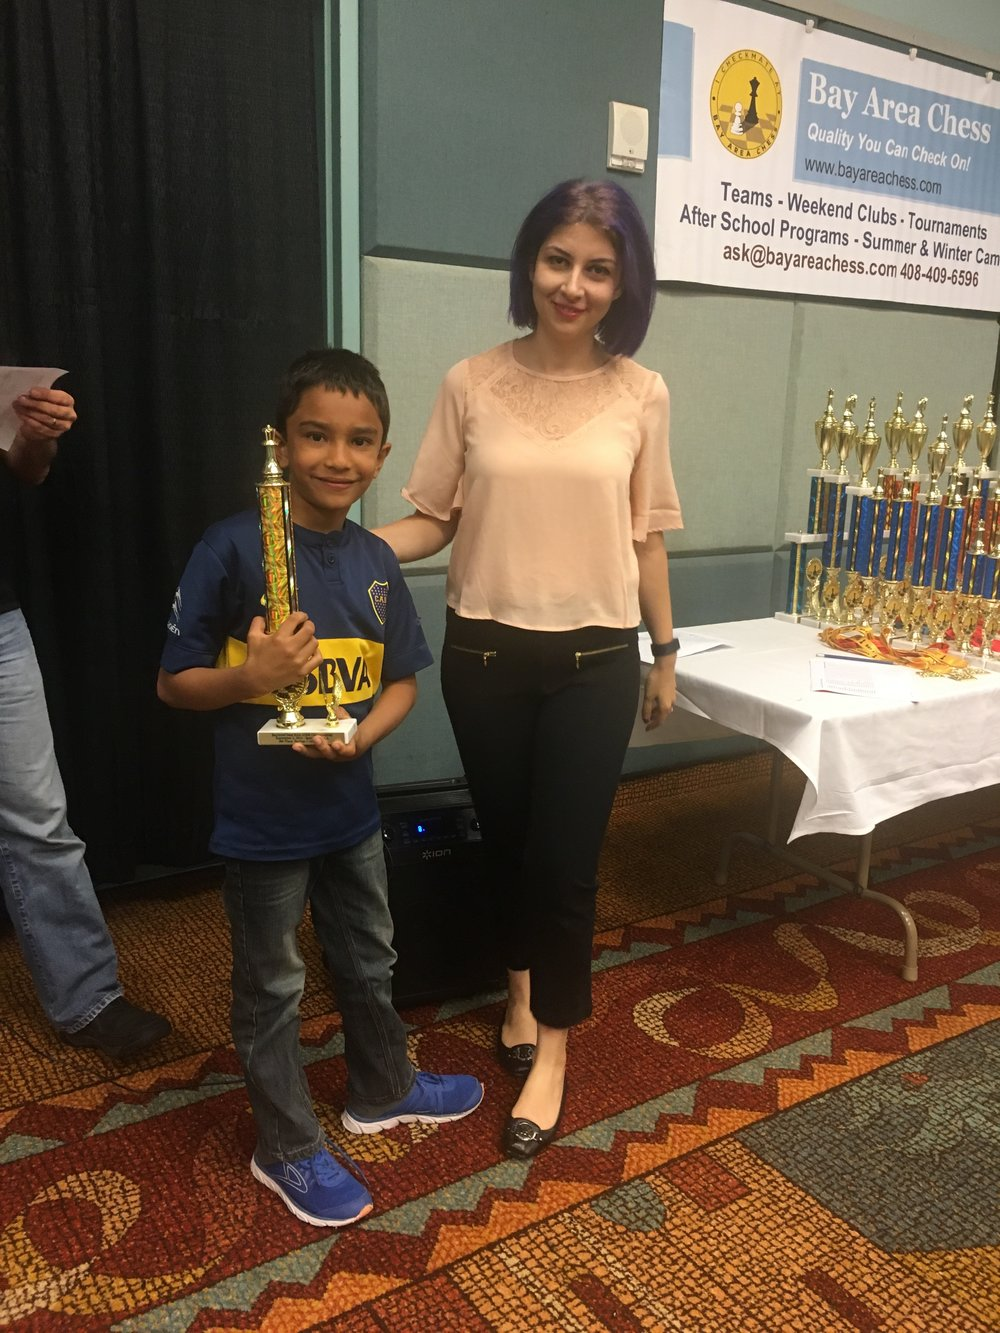 Vidyut places 1st in the Bay Area Chess Tournament held in USA - 2016